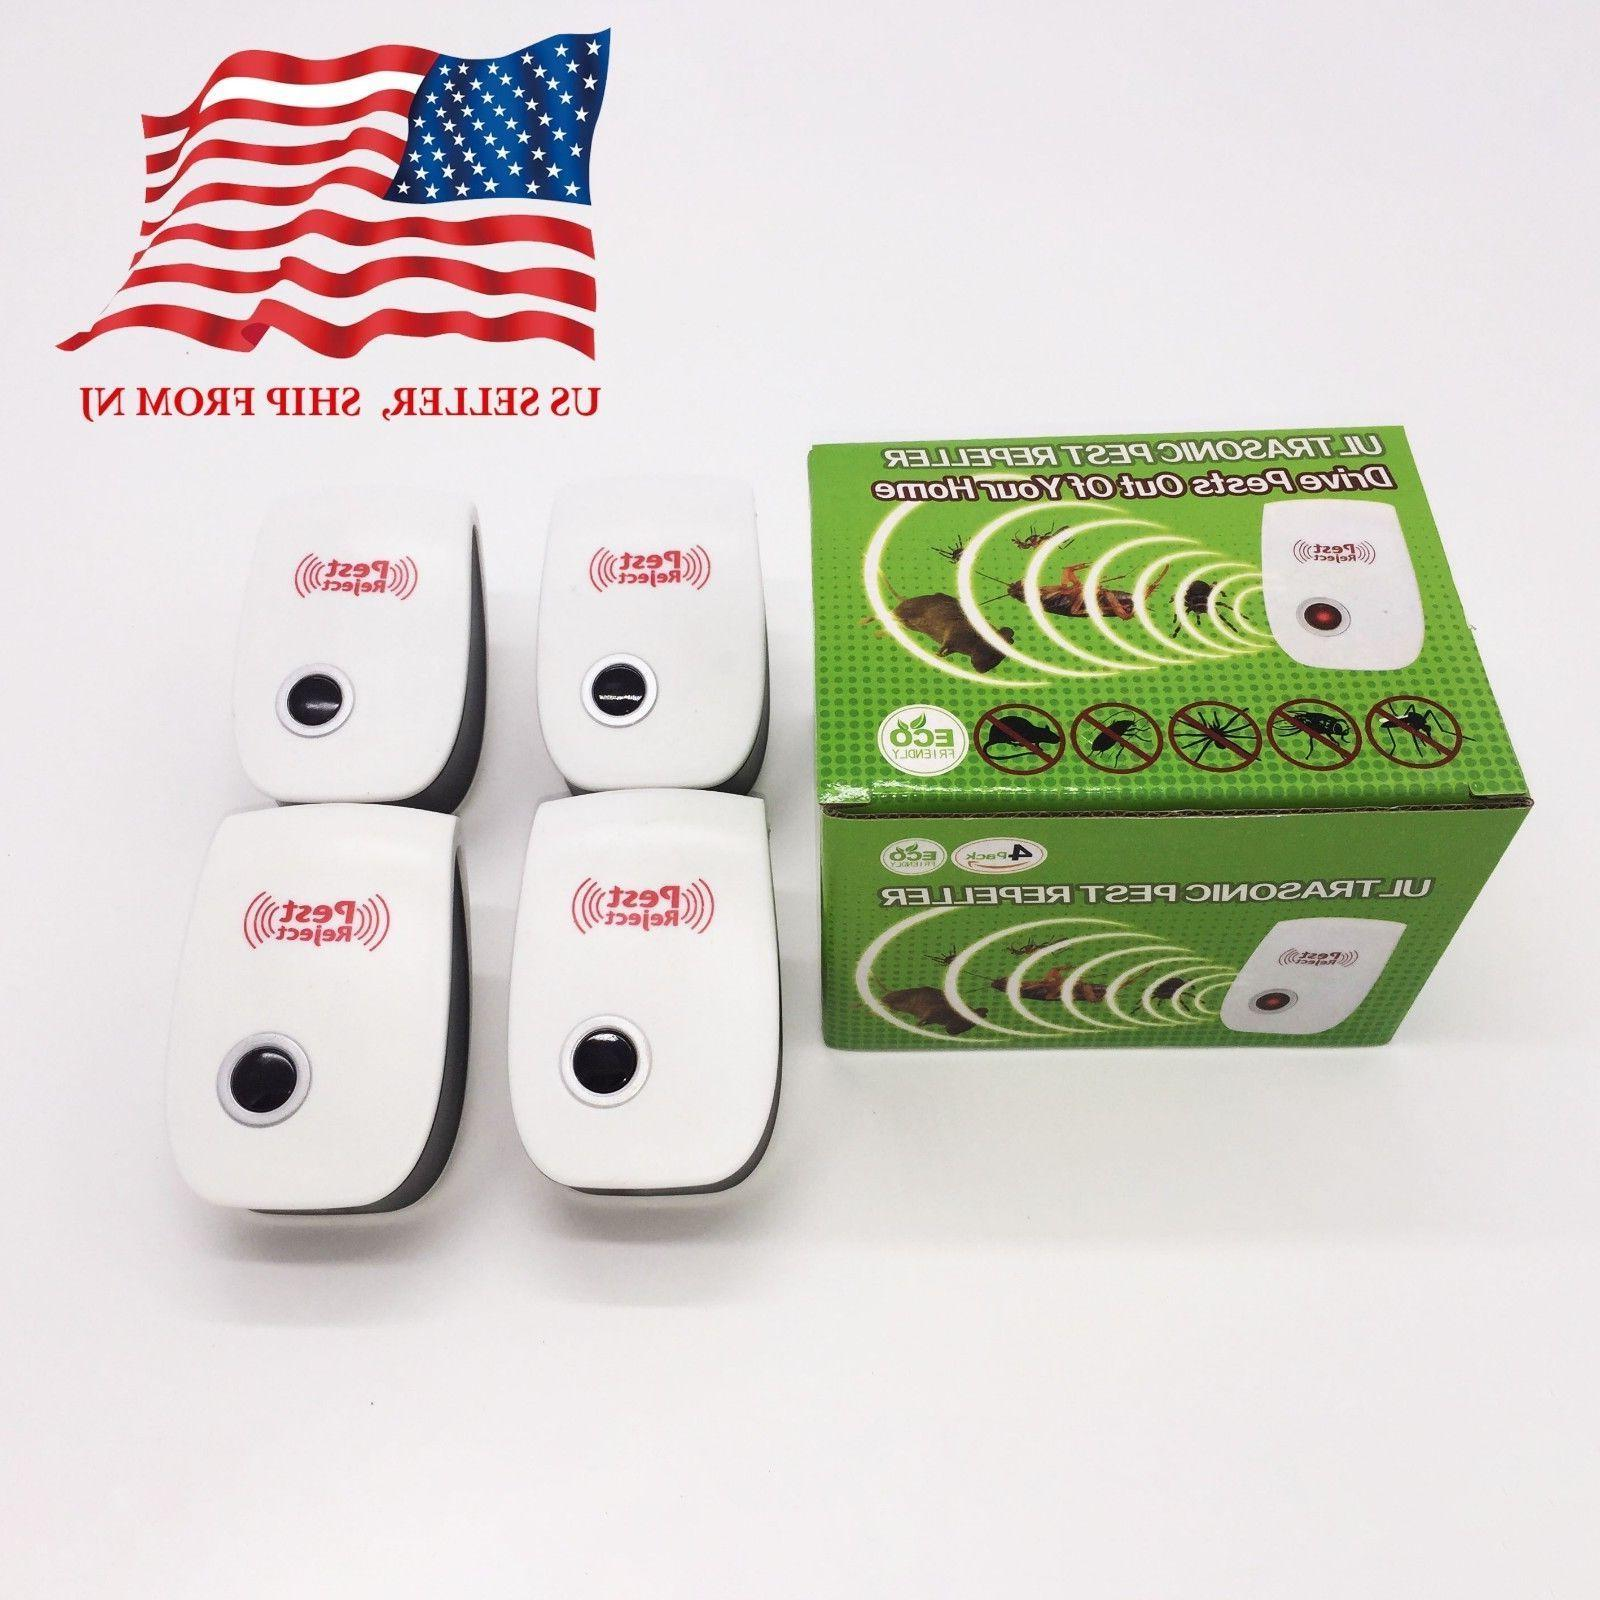 4 pcs electronic ultrasonic pest reject repeller